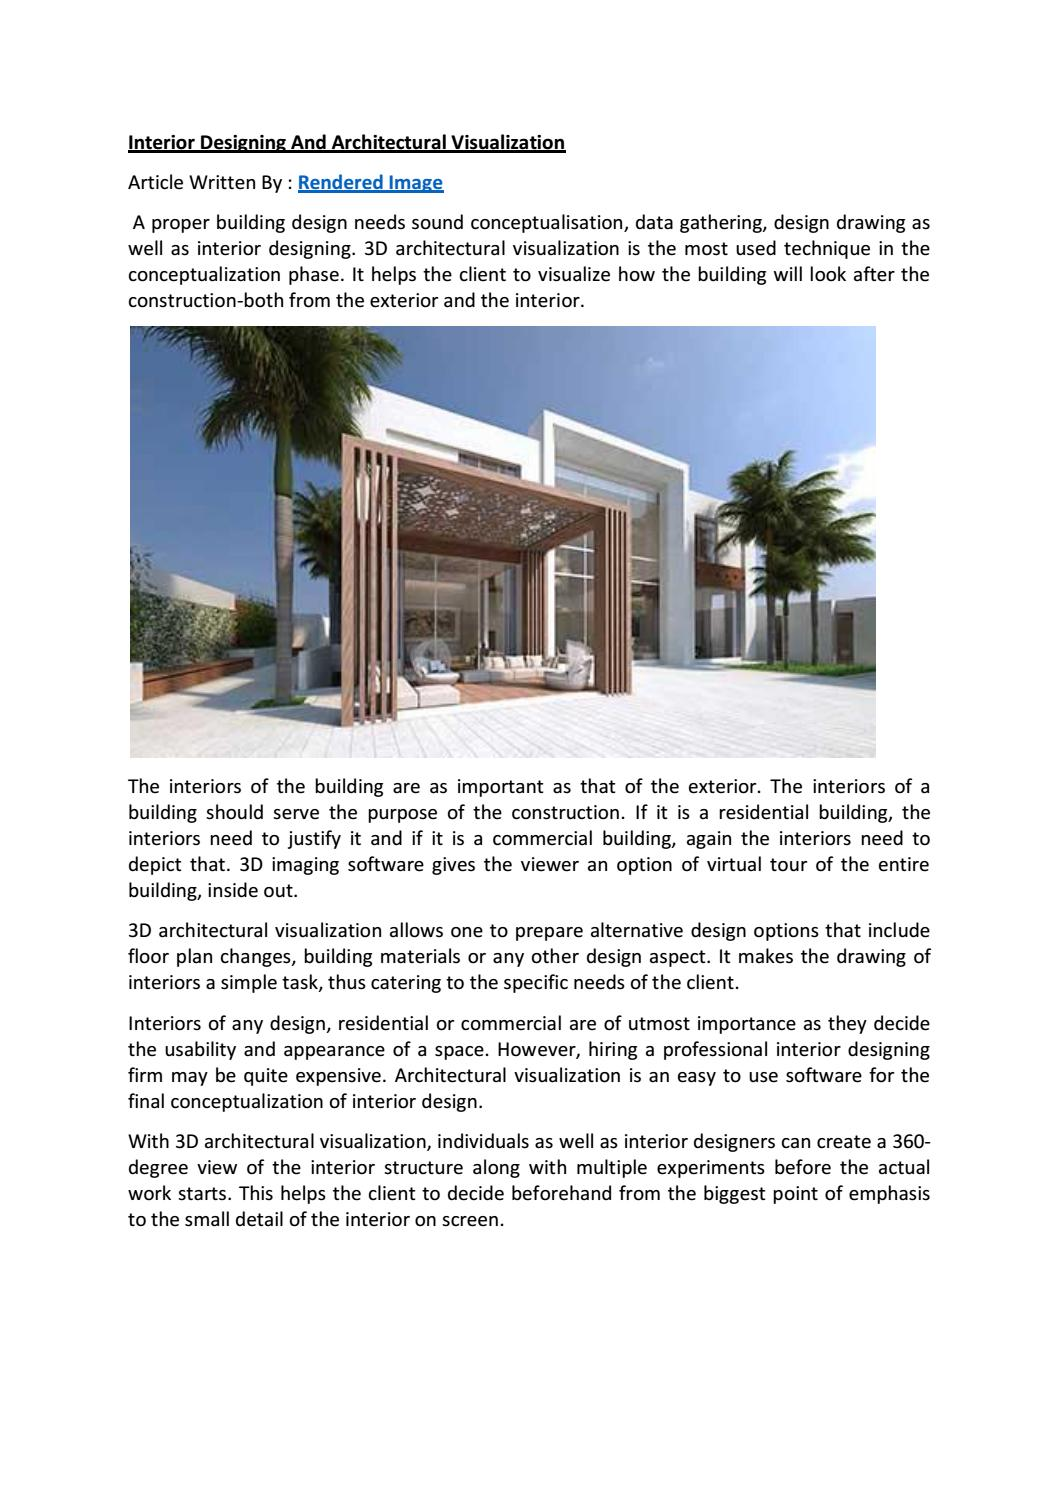 Interior Designing And Architectural Visualization By Reid Walters Issuu